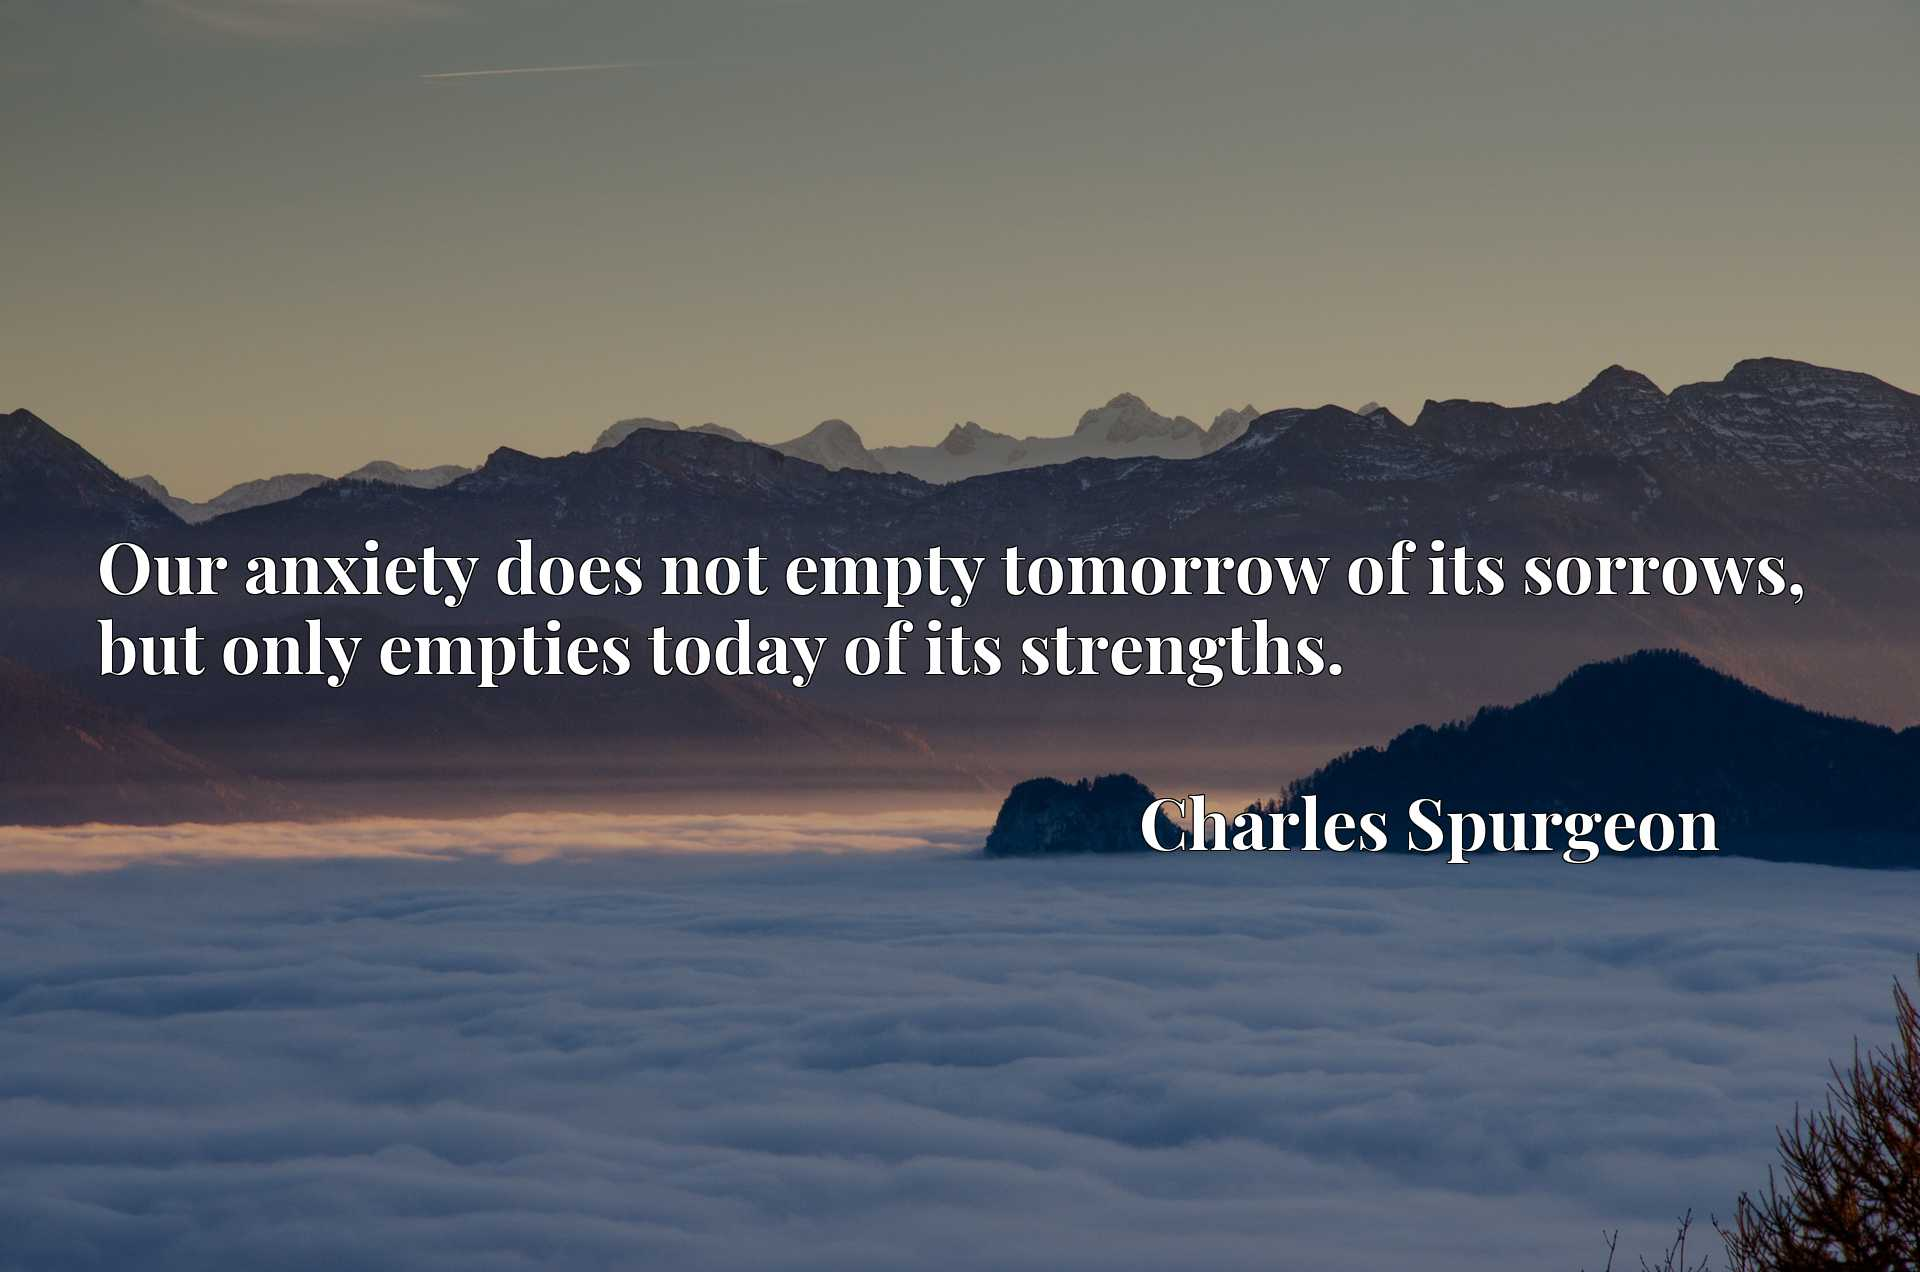 Our anxiety does not empty tomorrow of its sorrows, but only empties today of its strengths.